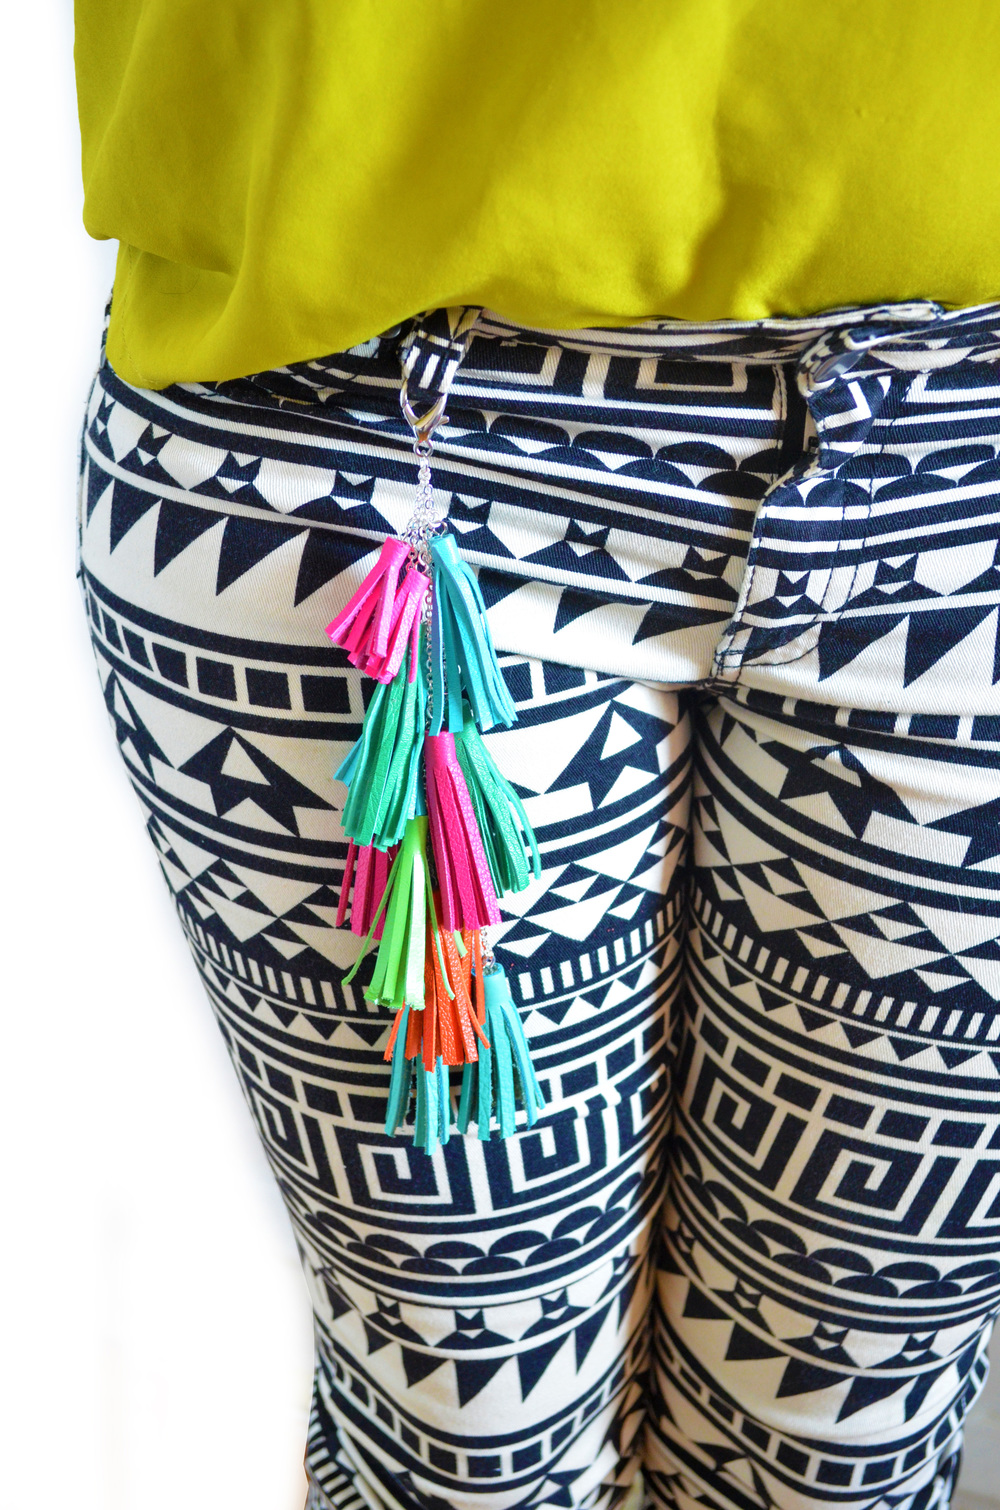 Leather Tassel Keychain, Fringe Purse Clip, Colorful Tribal Accessories 4 small.jpg